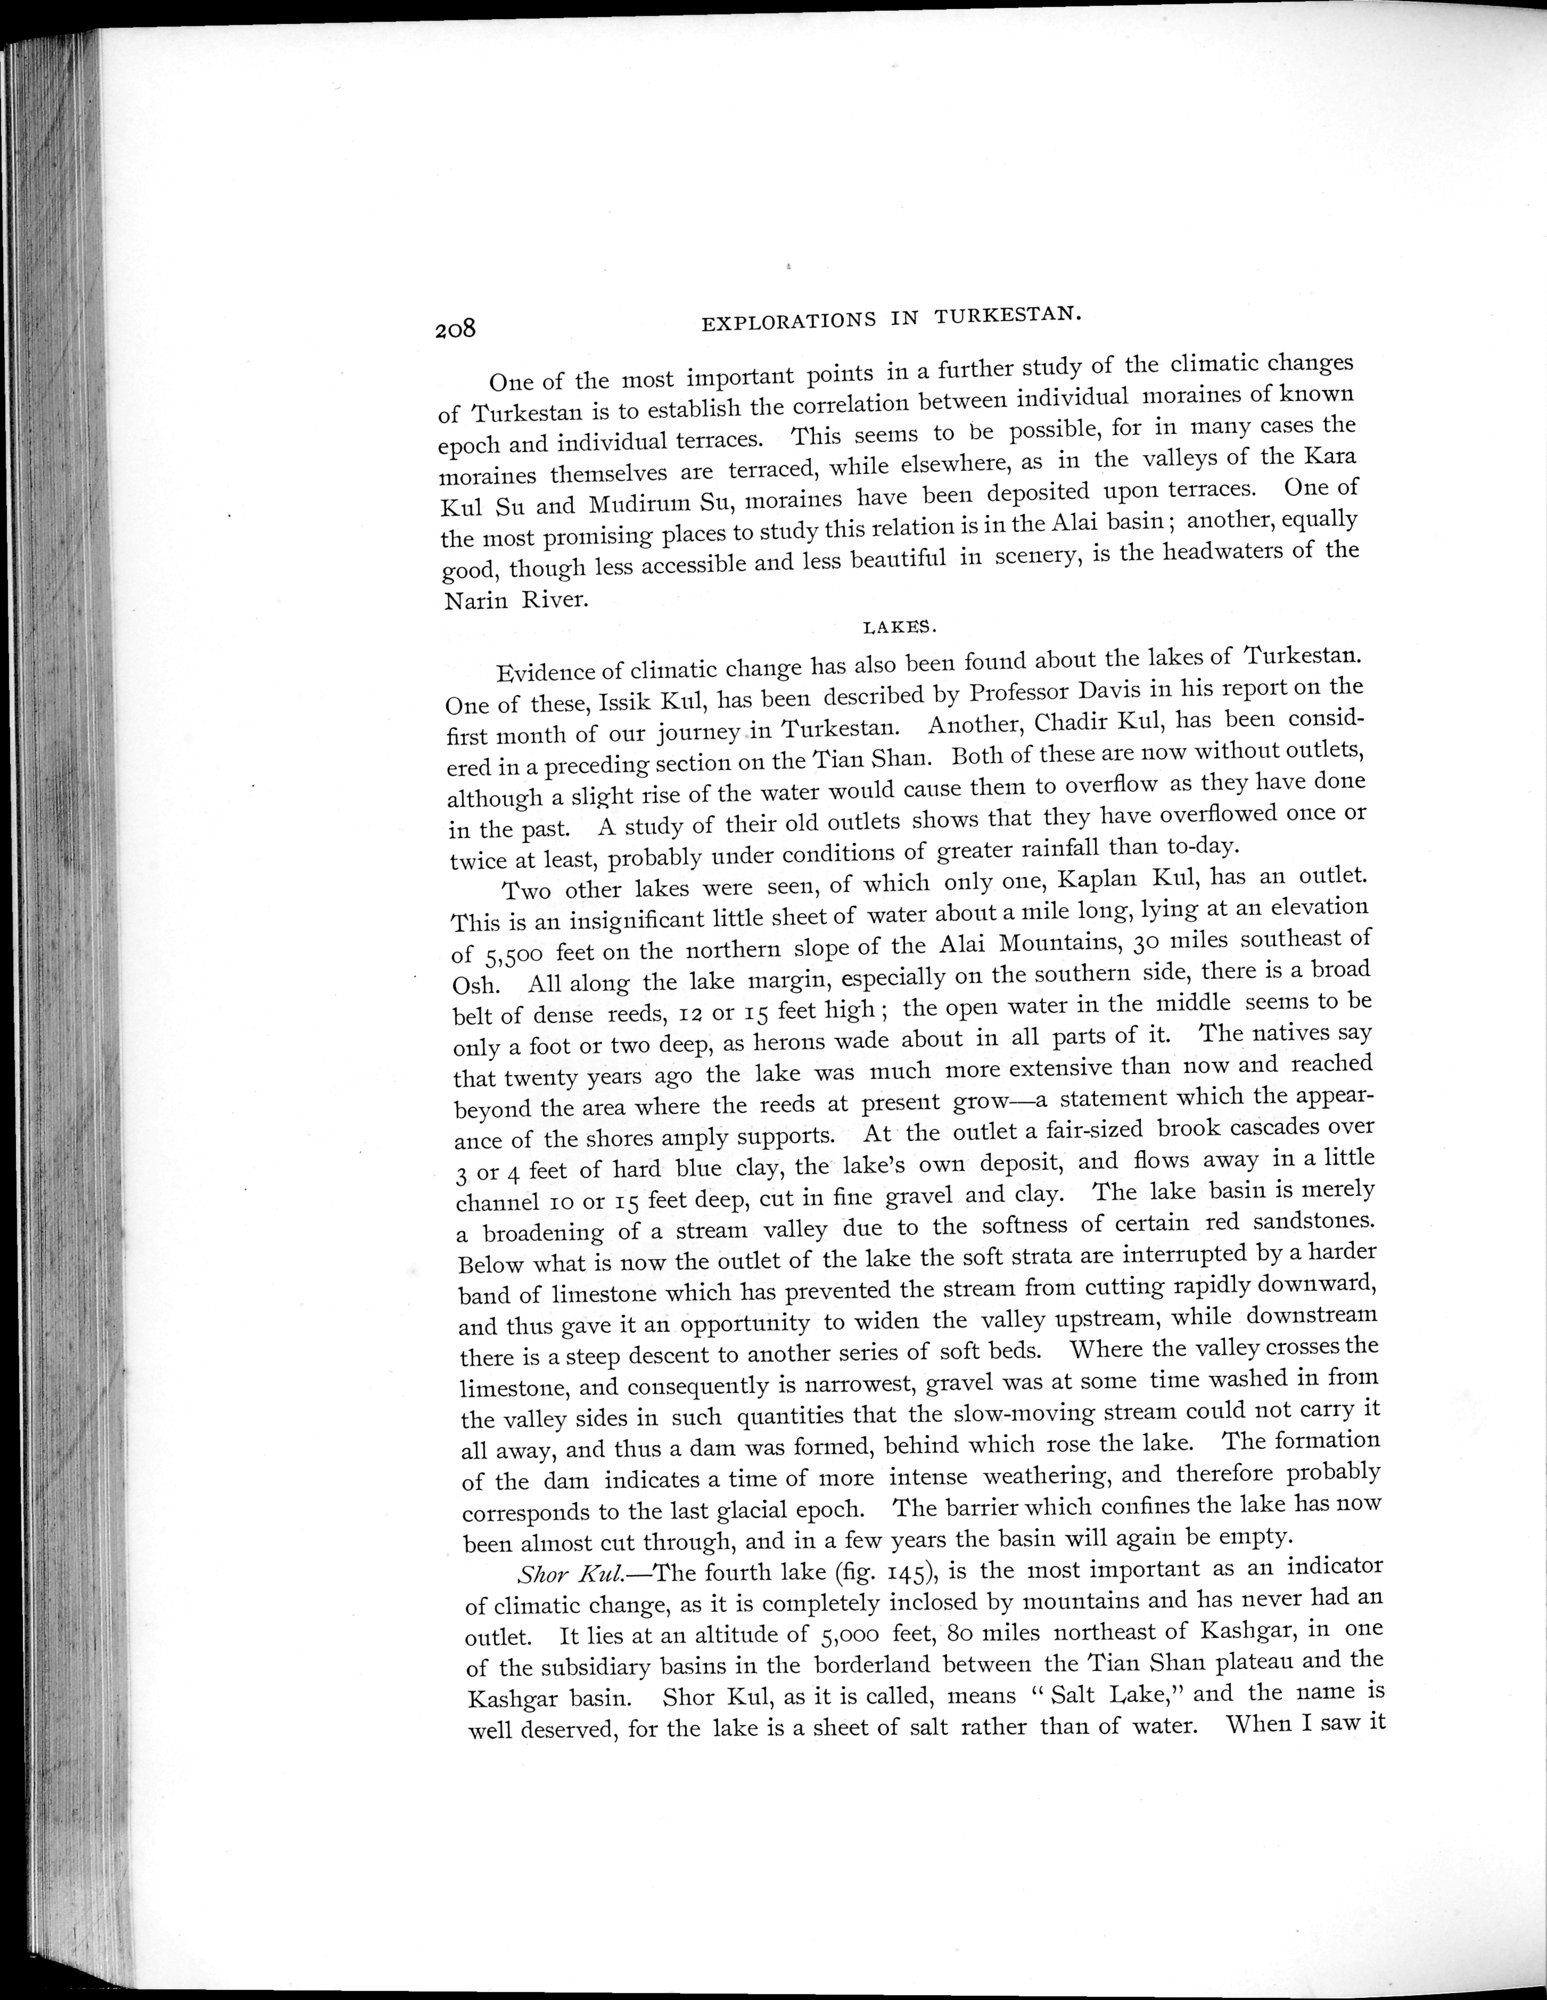 Explorations in Turkestan 1903 : vol.1 / Page 238 (Grayscale High Resolution Image)